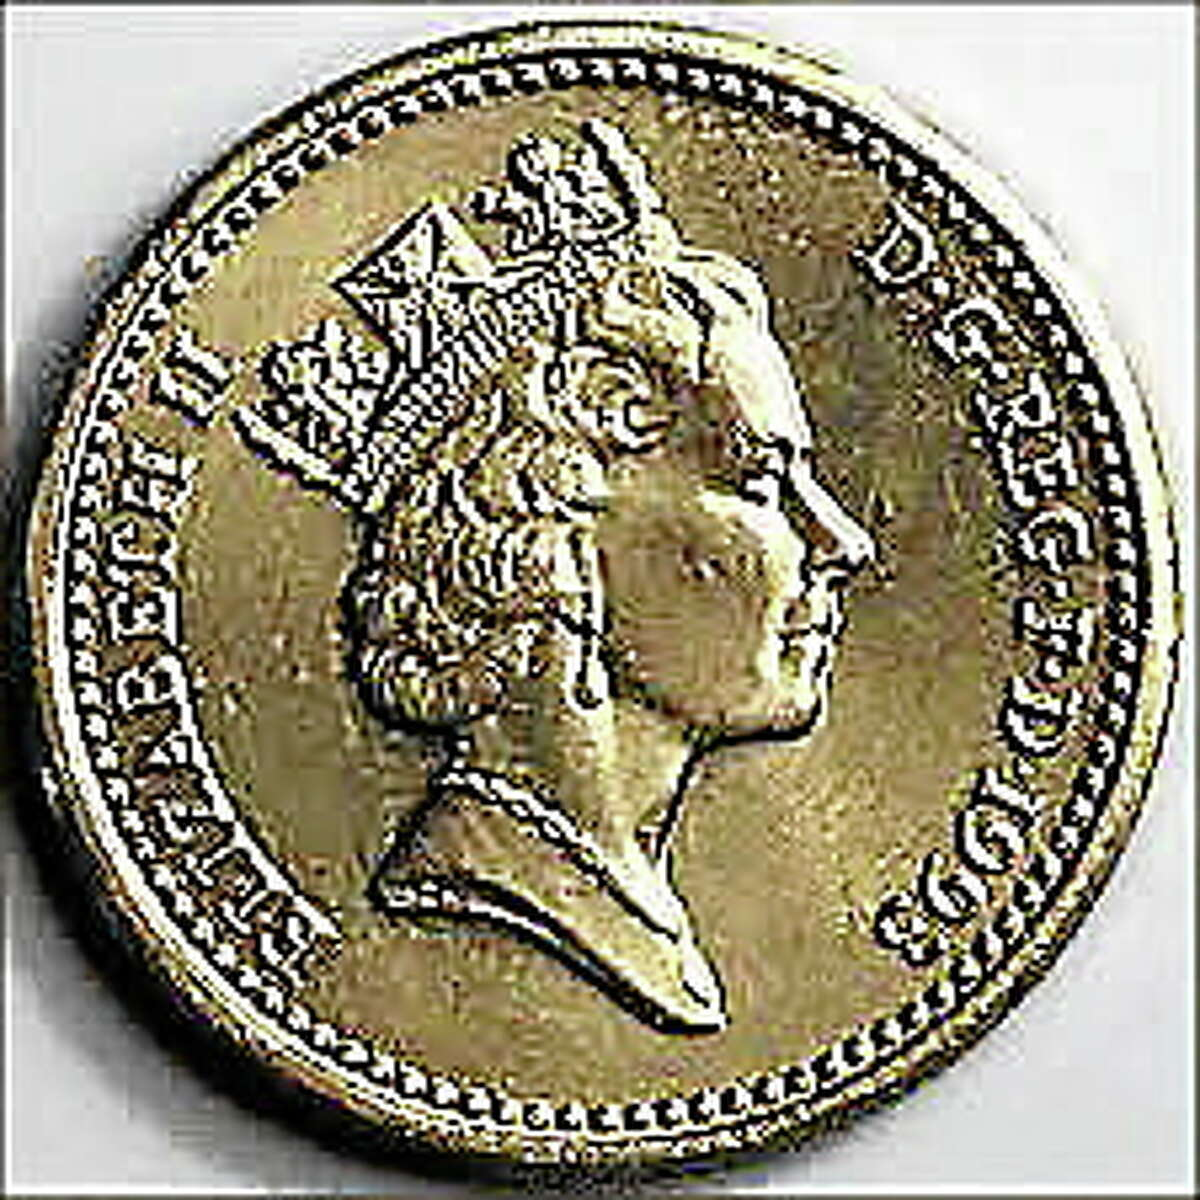 A coin worth 1 pound currently honors Prince George's great-grandmother, Queen Elizabeth II.